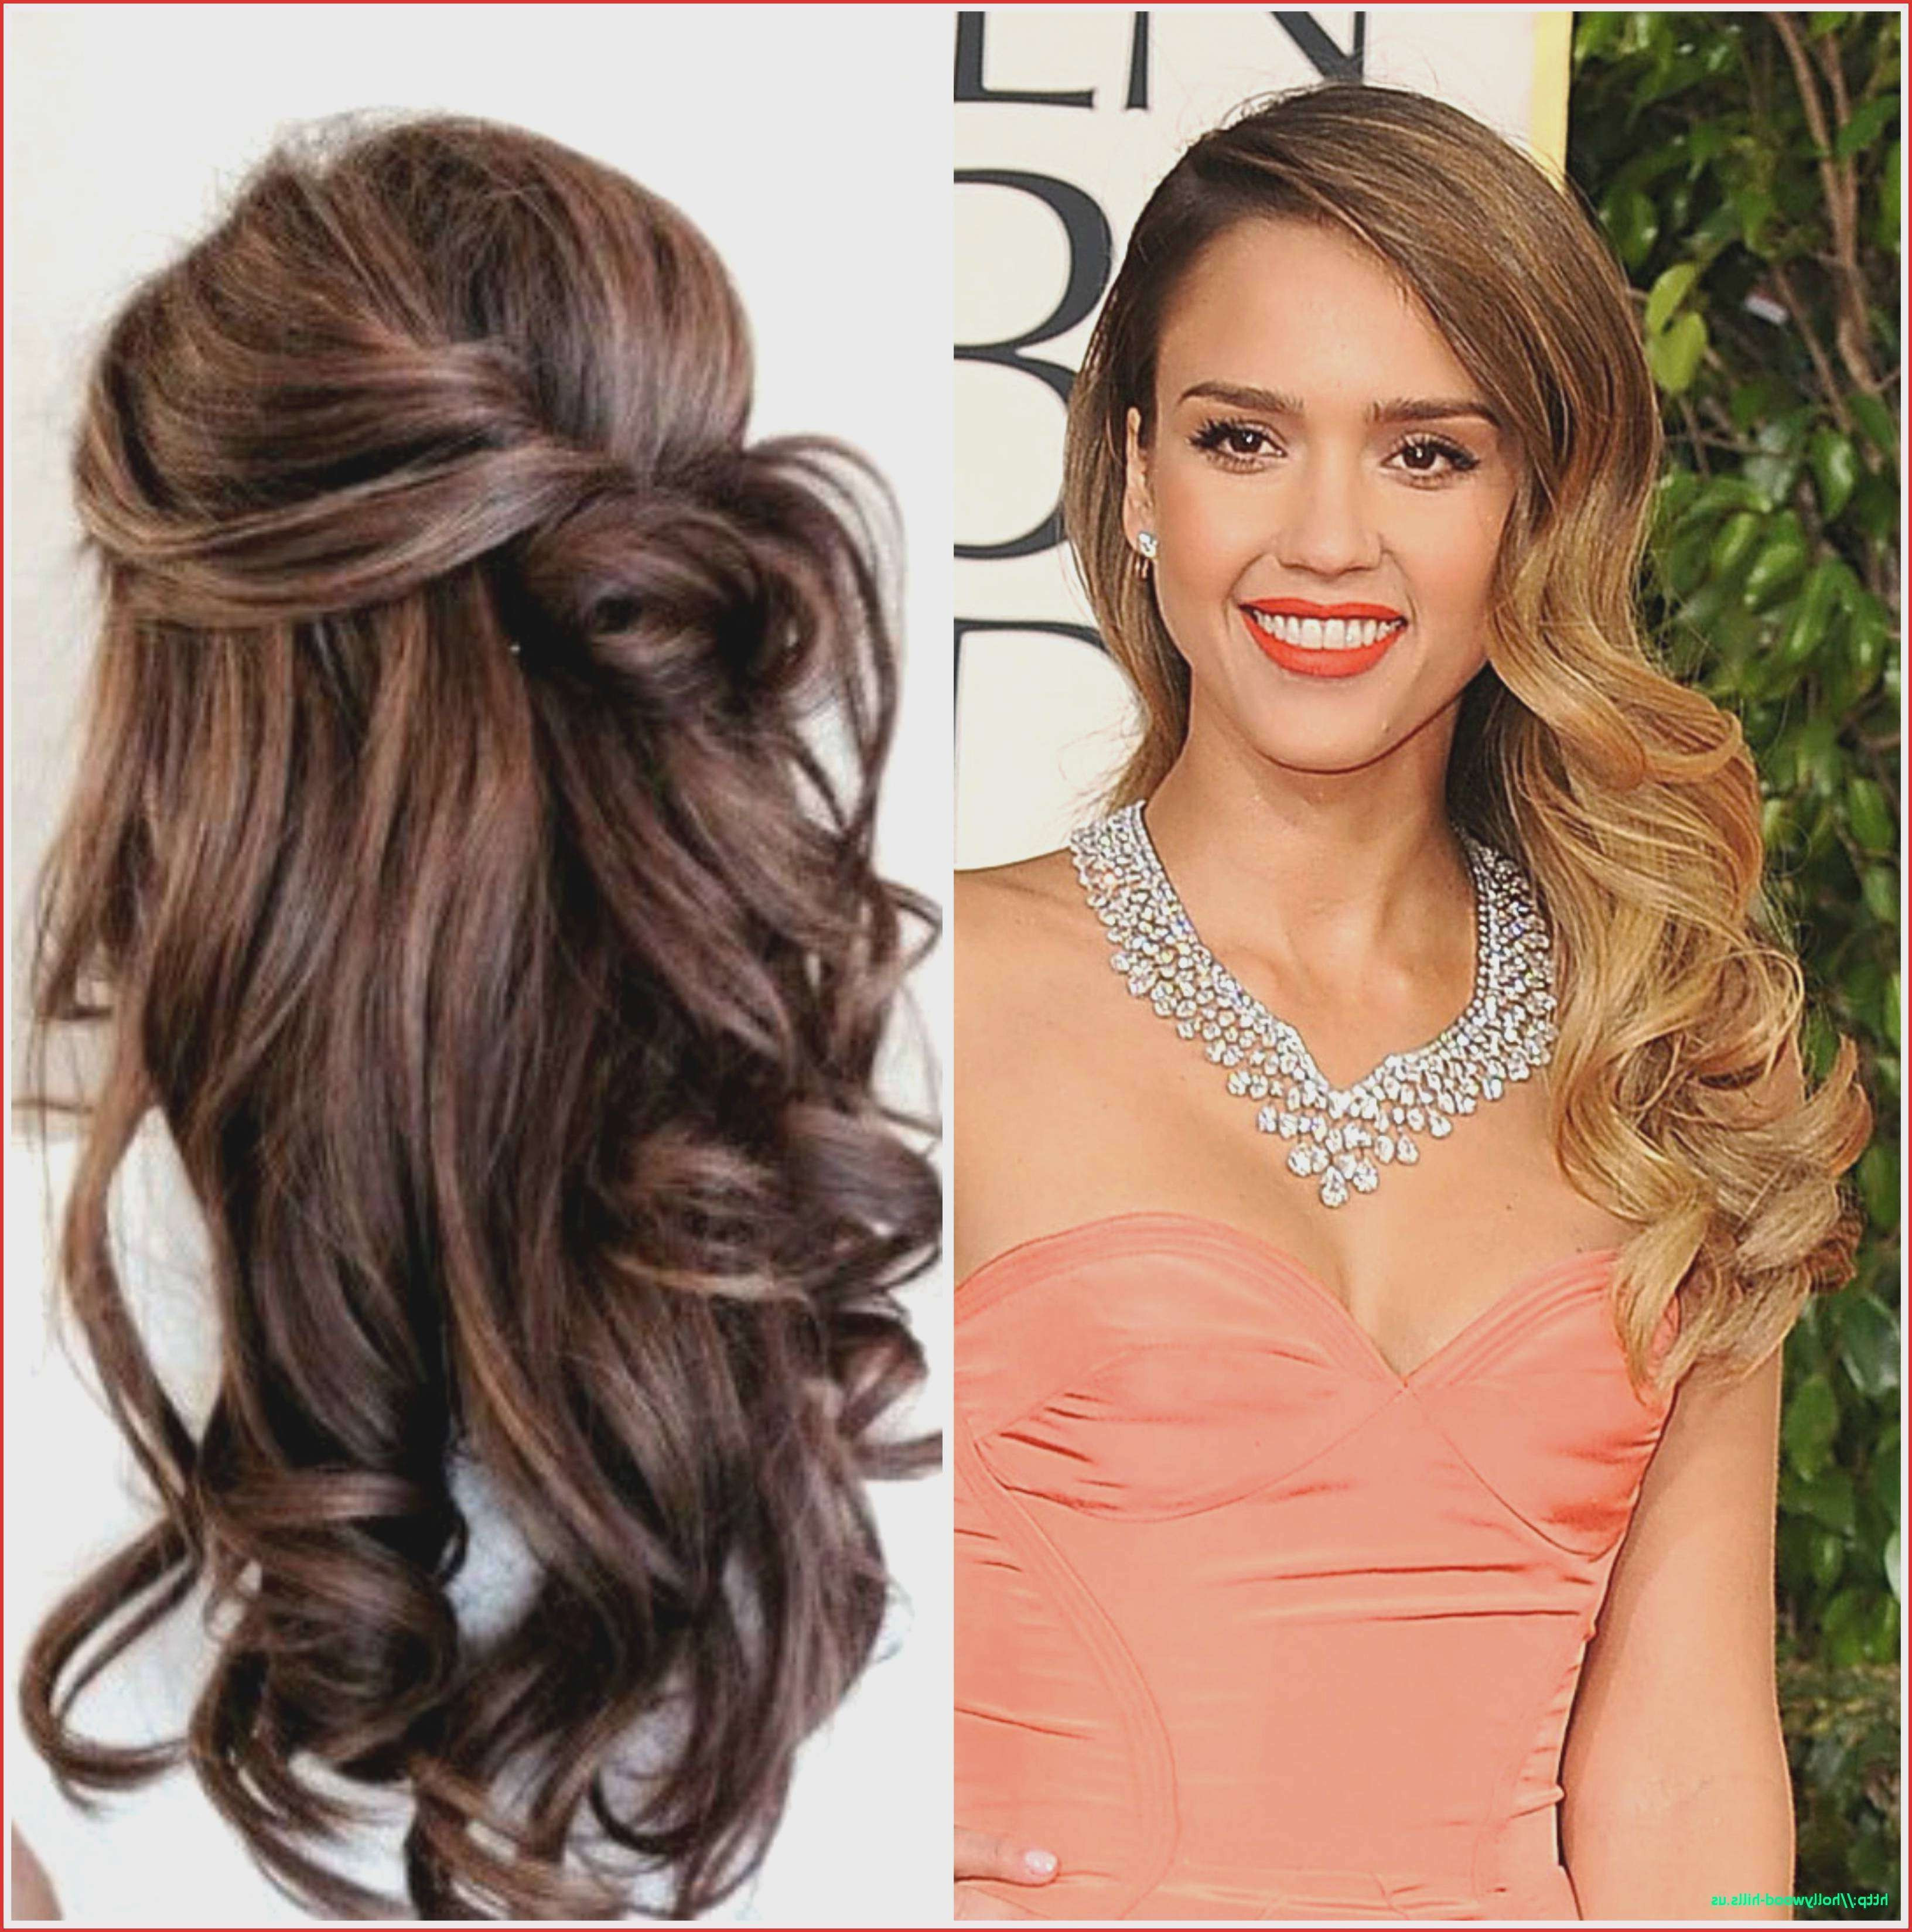 Awesome Easy Hairstyle Tutorials For Short Hair – Uternity Pertaining To Hairstyles For Short Hair For Graduation (View 9 of 25)